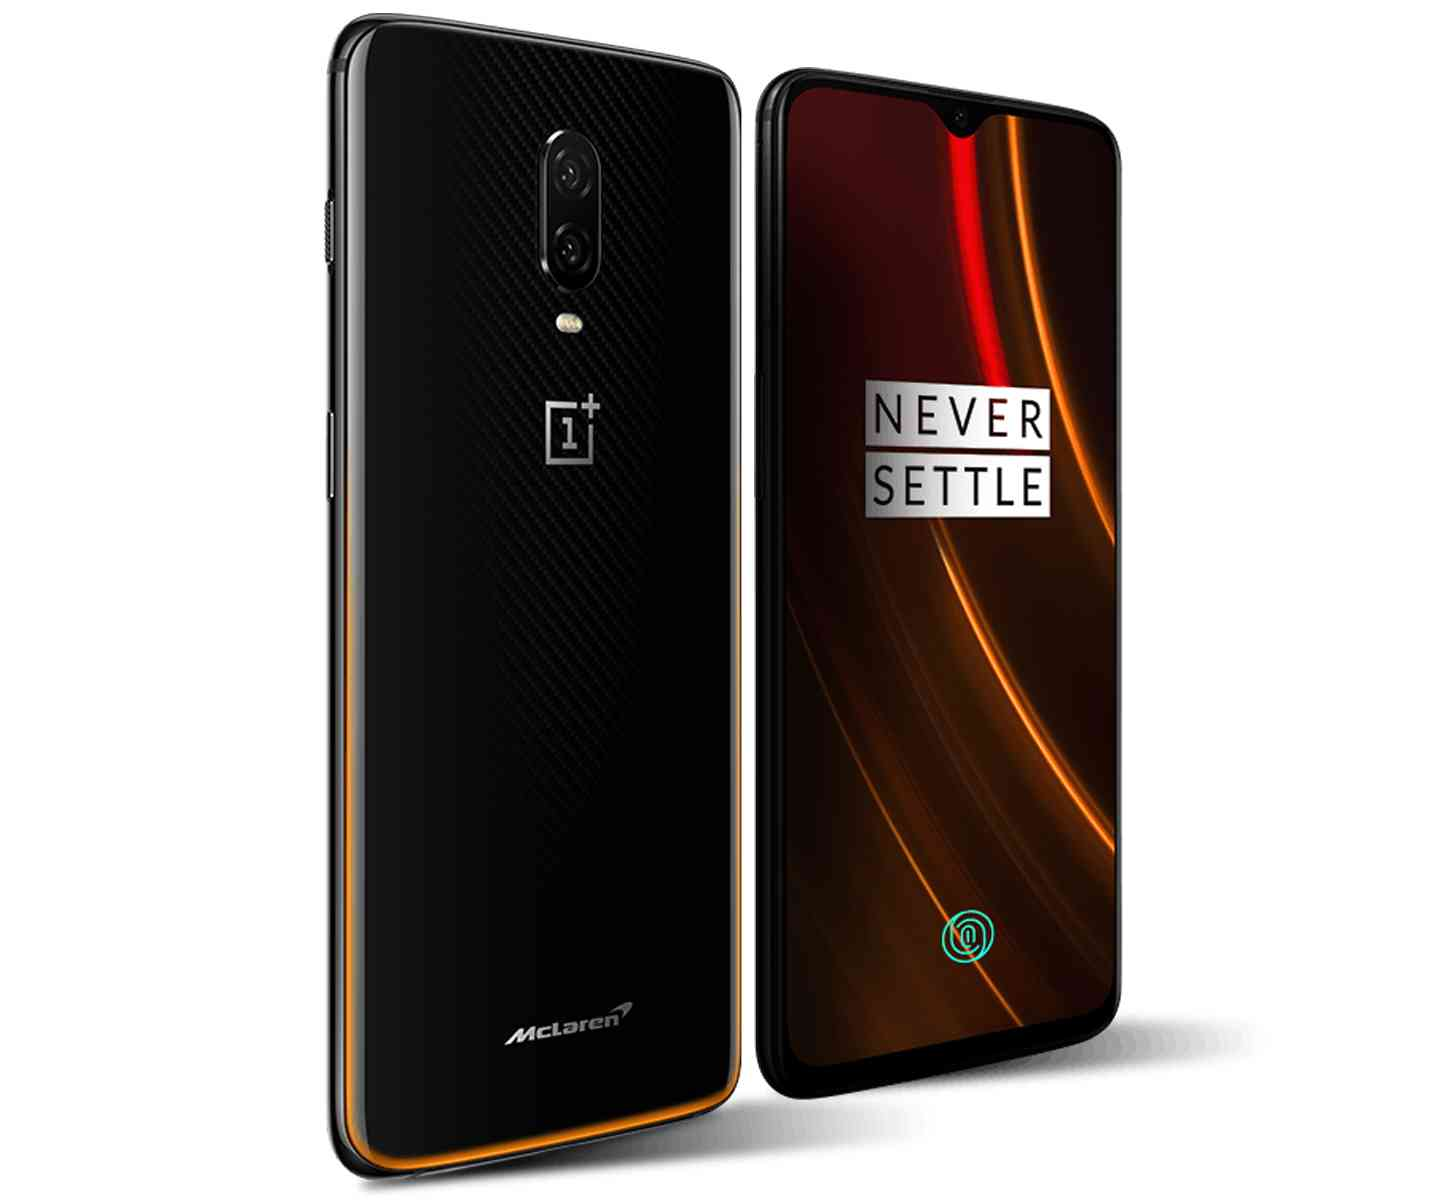 Download Oneplus 6t Mclaren Edition Hd Wallpapers Gadgetstwist